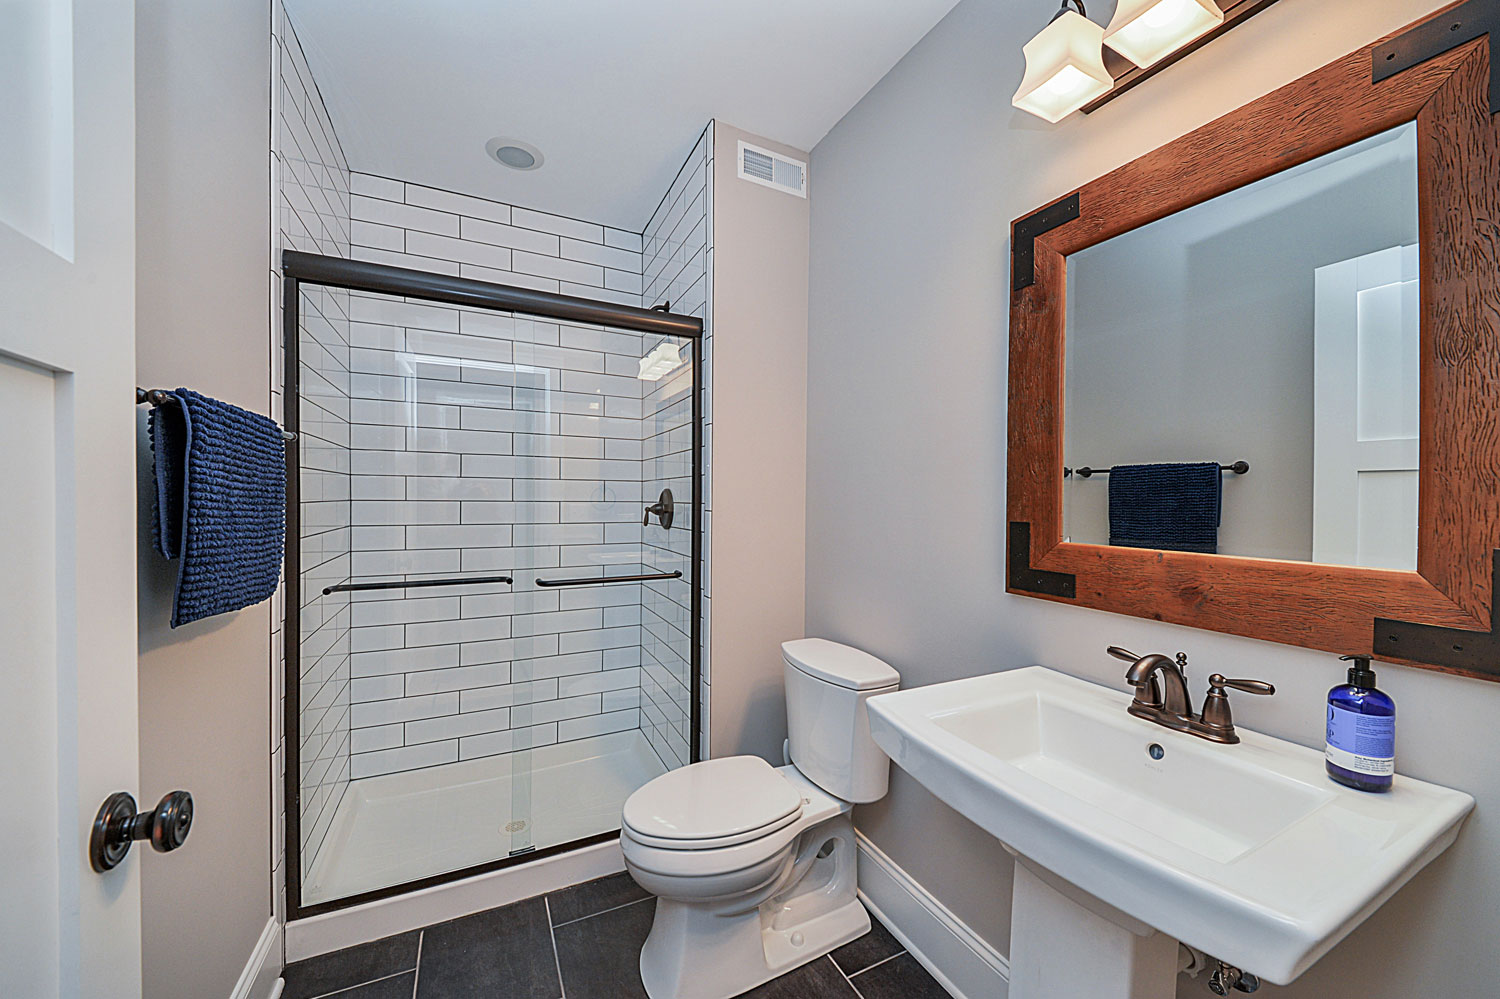 Drew Nicoles Basement Remodel Pictures Home Remodeling - How to build a bathroom in the basement